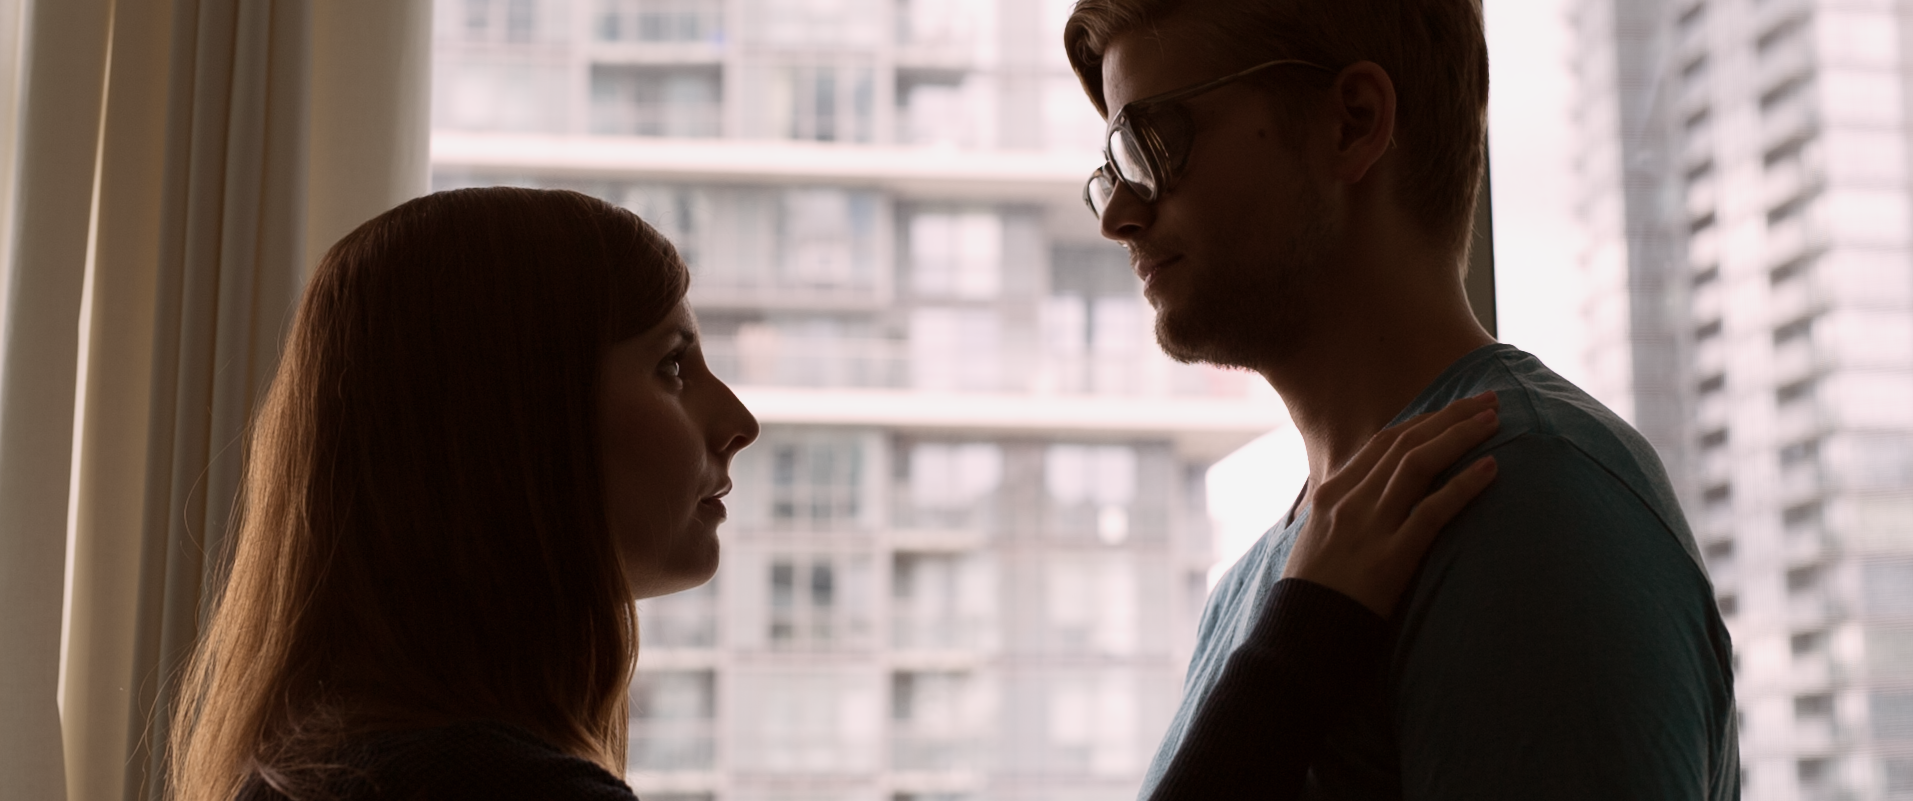 Through Rose-colored glasses, short film, independent, film production company, toronto, canted pictures, helmann wilhelm, ava torres, magic lantern, raw, canon 5d mark iii, canon 5d mark 3, dslr, indie film